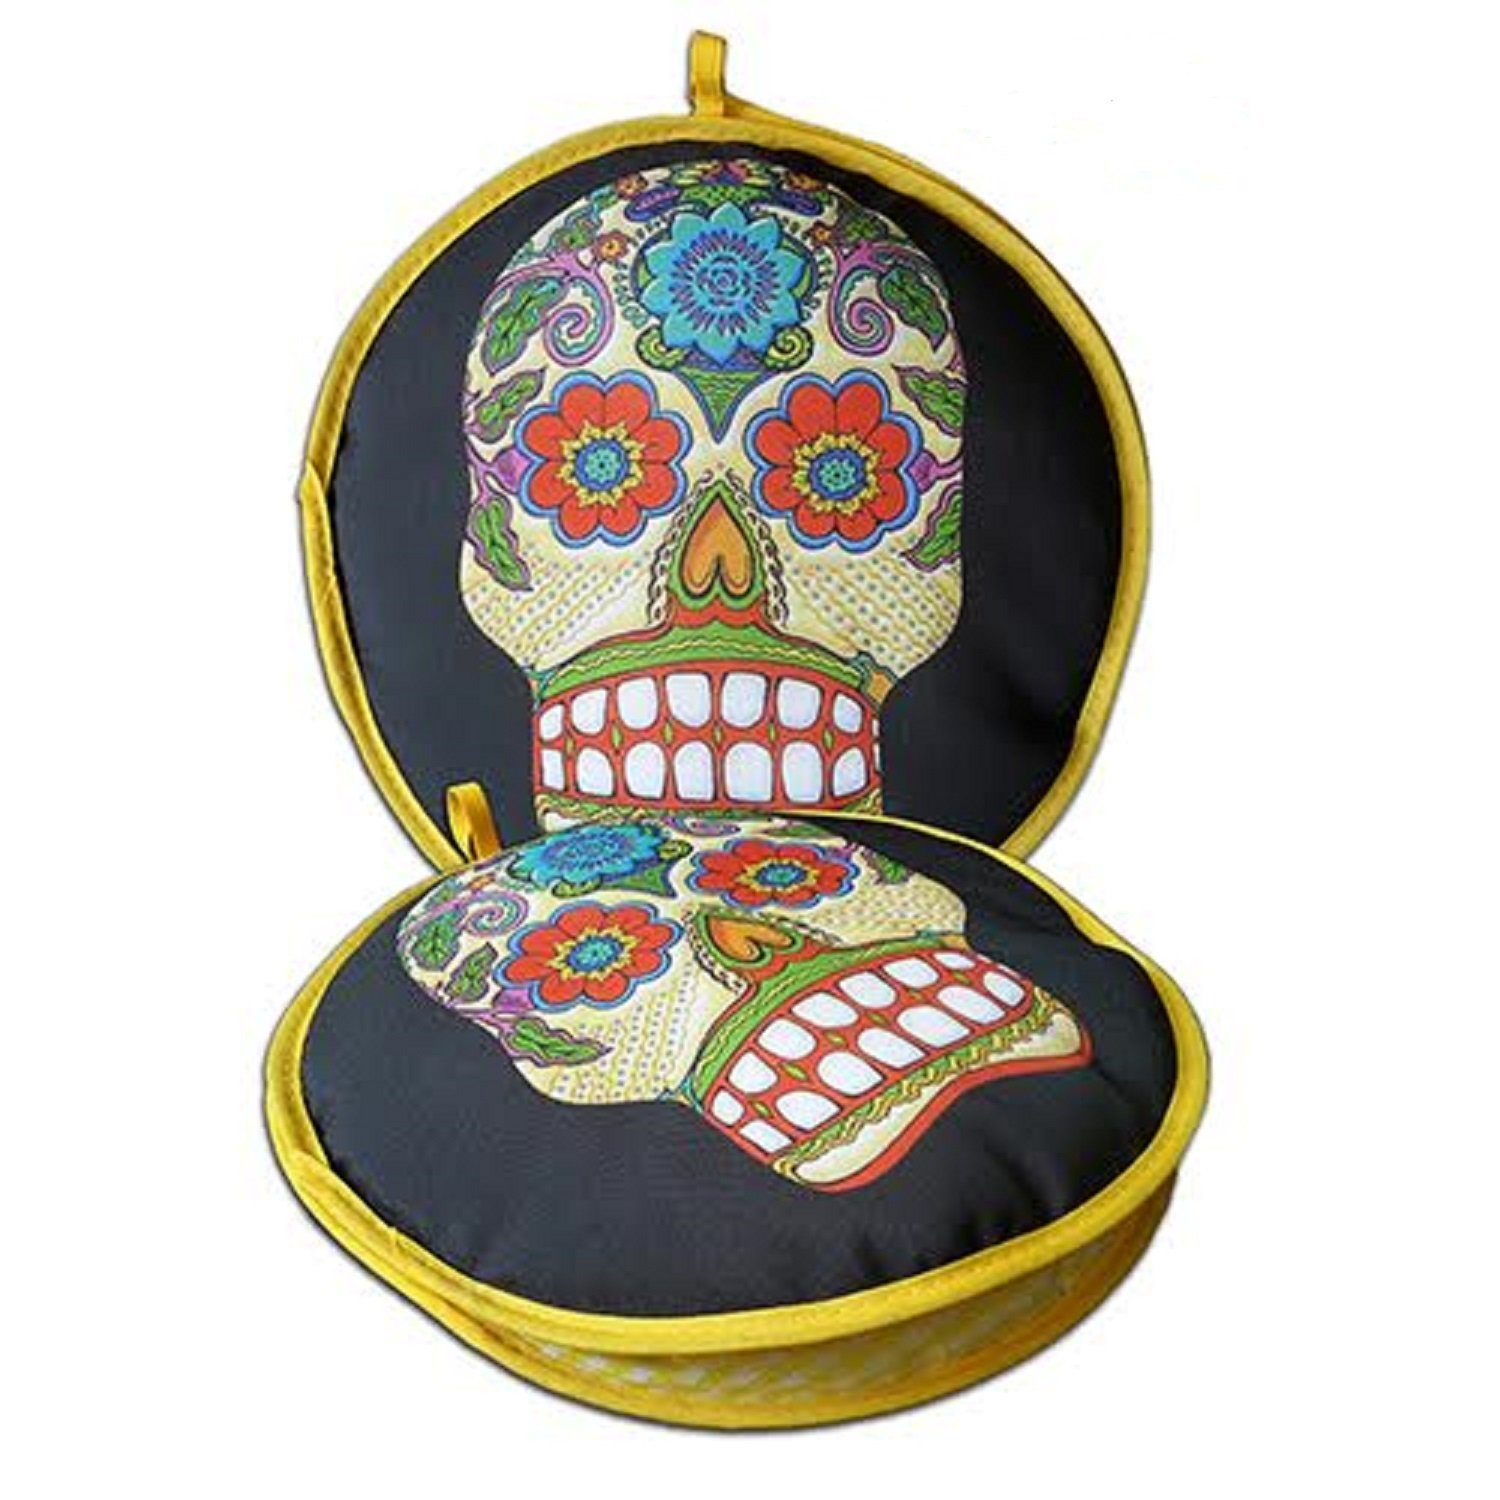 La Tortilla Oven Day of the Dead Insulated Tortilla Warmer & Microwave Vegetable Steamer, 10-Inch